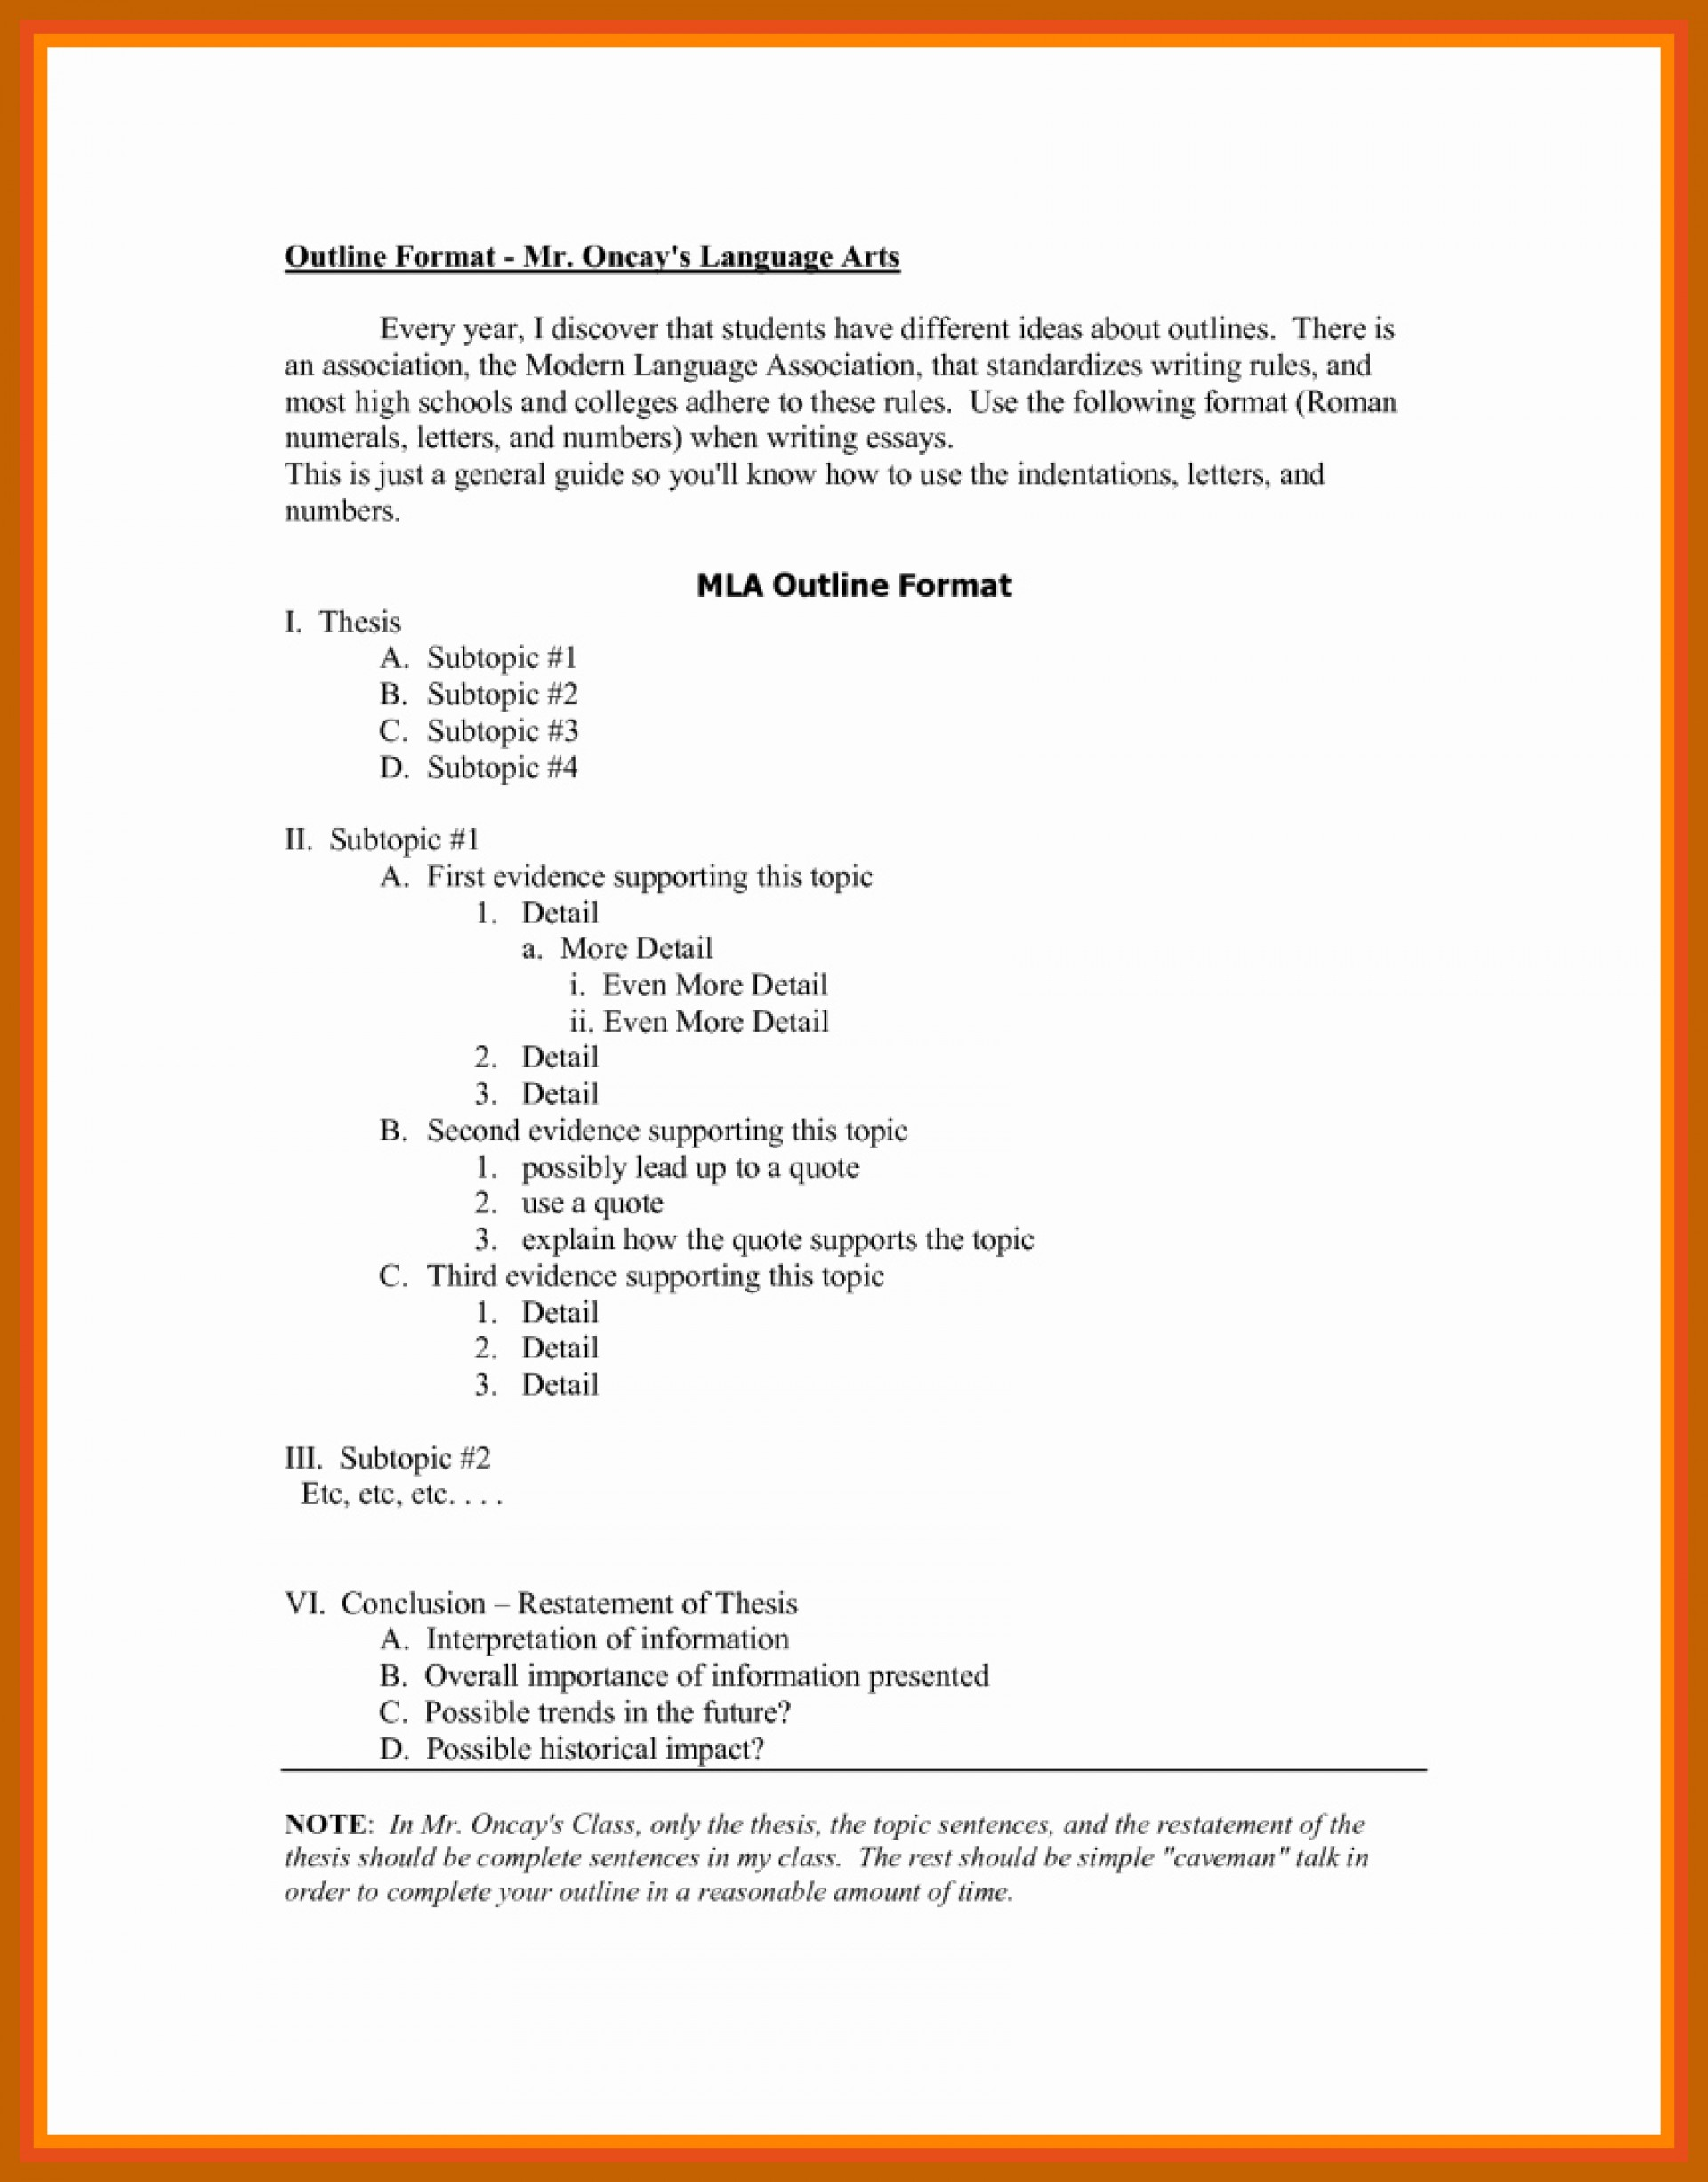 006 Mla Style Research Paper Format Best Of Outline In How To Don For Amazing Do An A 1920